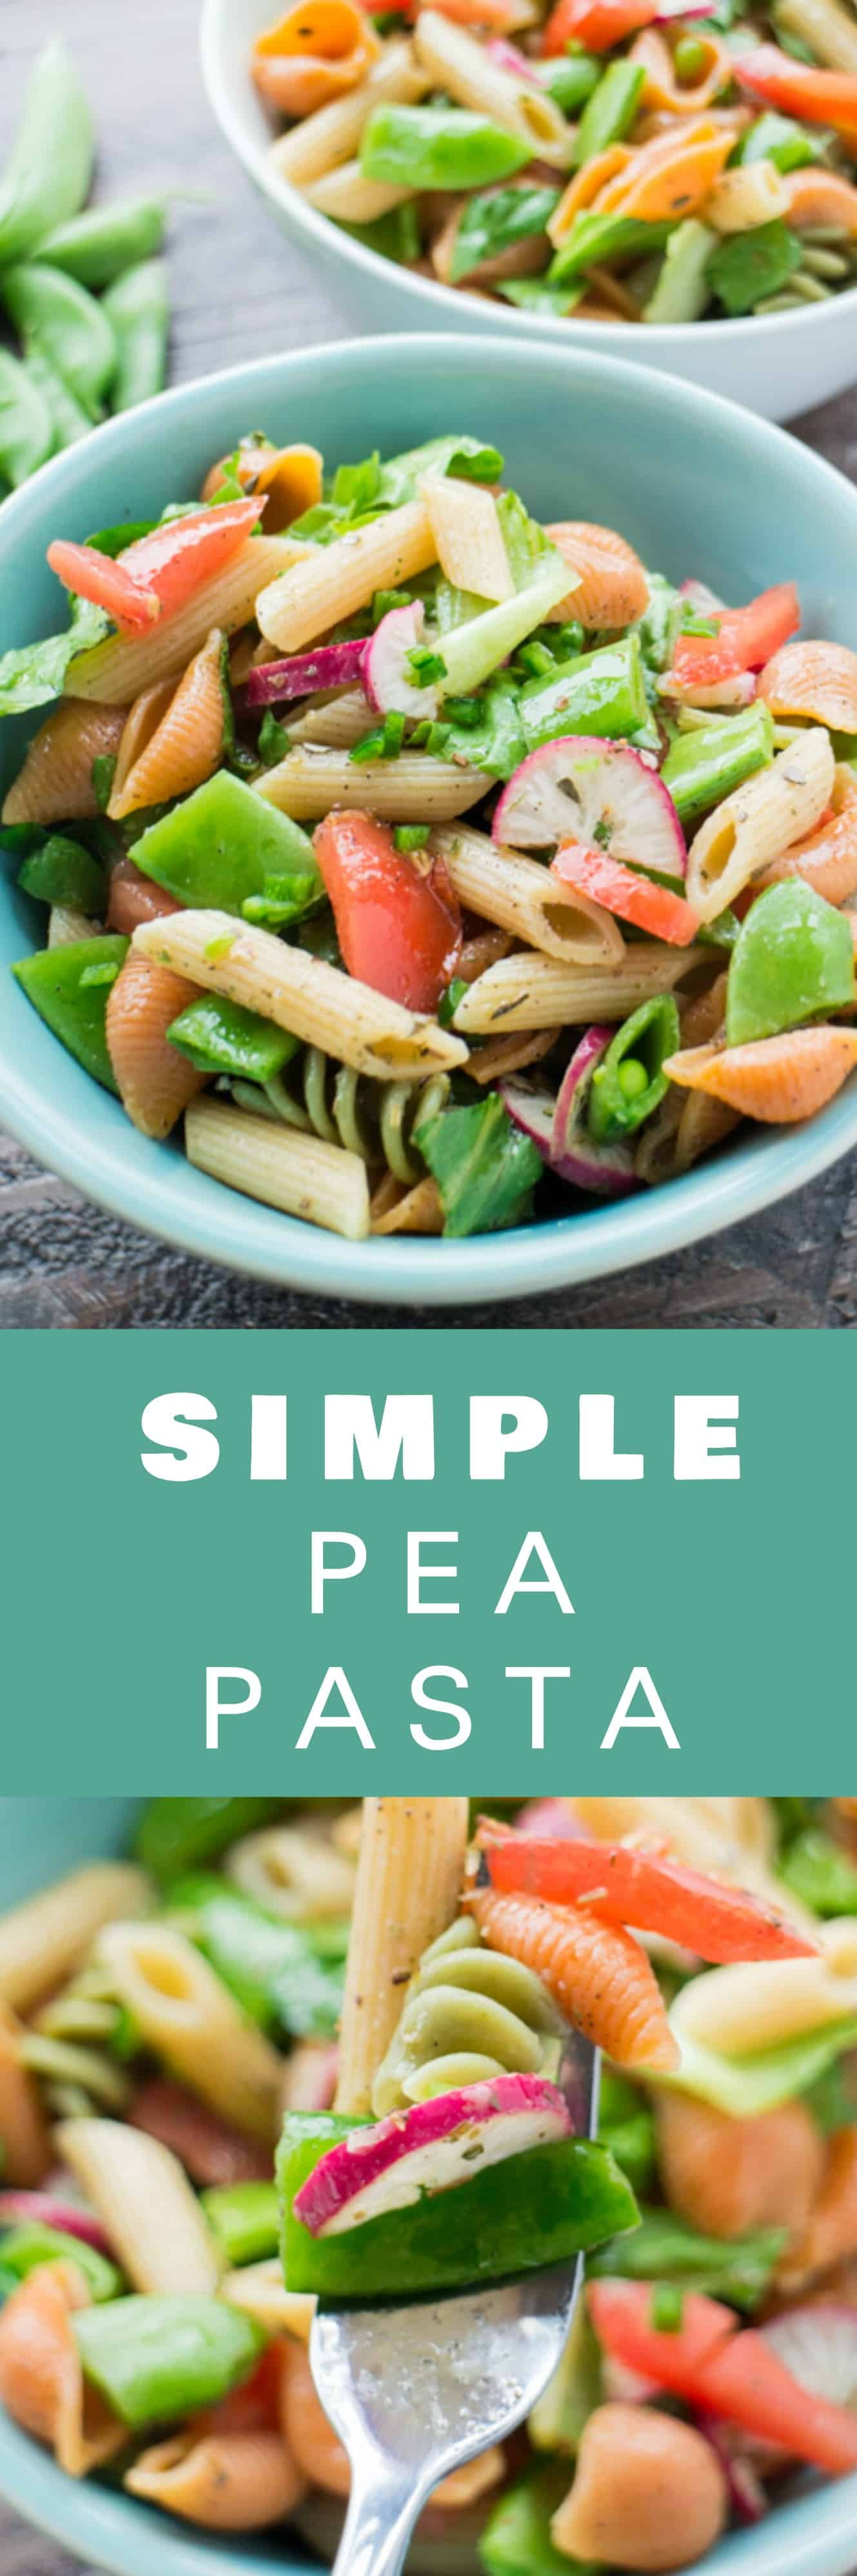 SIMPLE Pea Pasta recipe! This easy and healthy dinner dish uses fresh sugar snap peas and only takes 15 minutes from to start to finish! It's my favorite Spring and Summer garden recipe! It's completely vegan too!